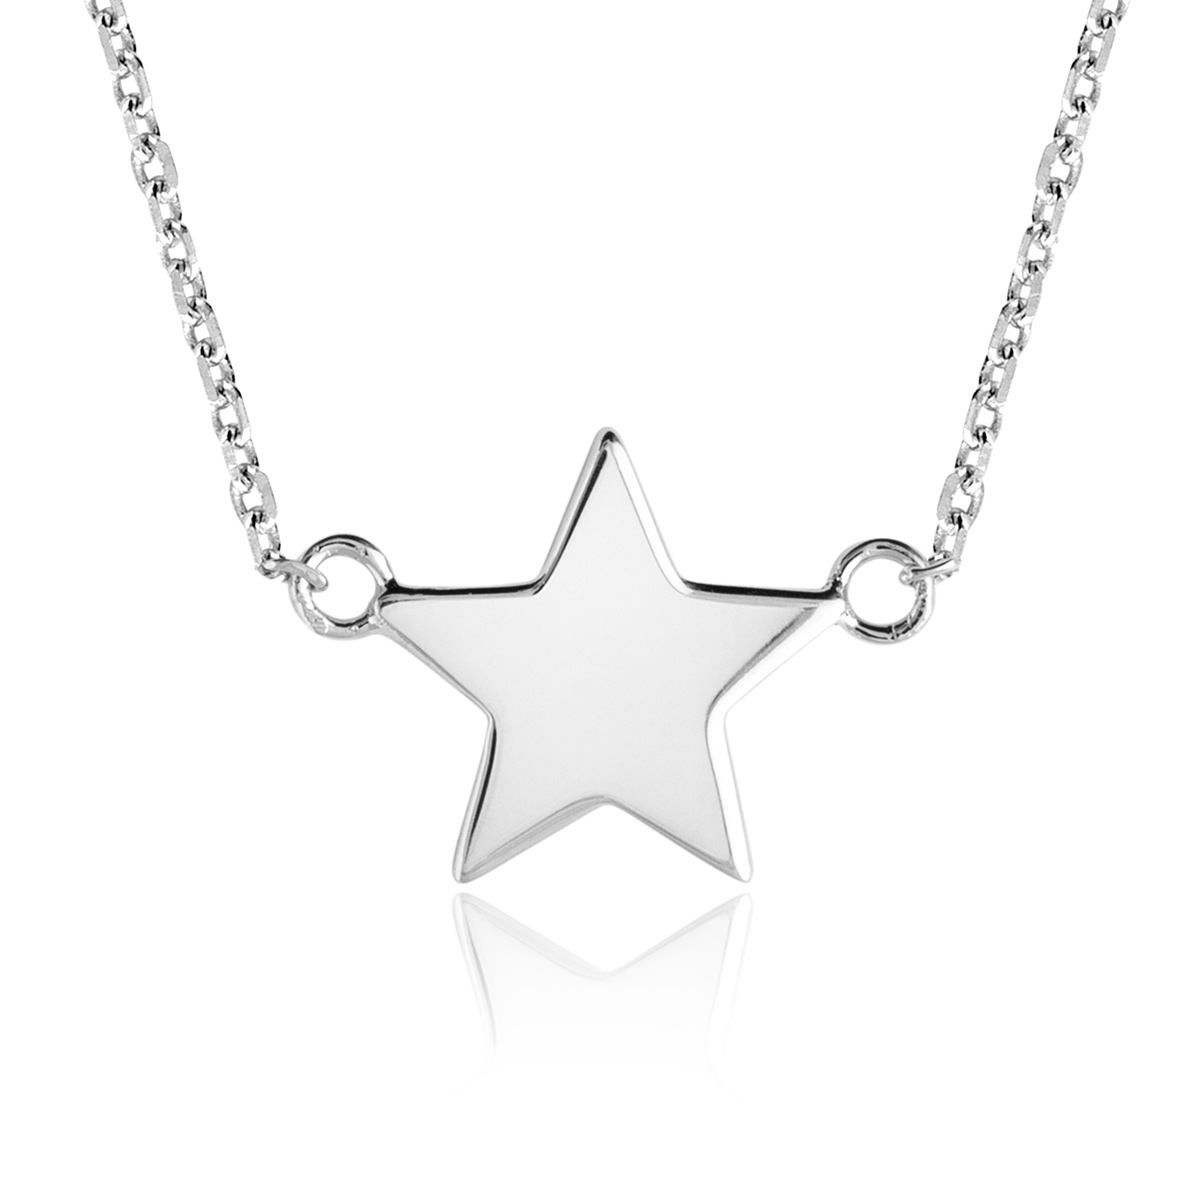 mini_star_necklace_rhodiumpla_terat_silver_sophie_by_sophie_close_up_r